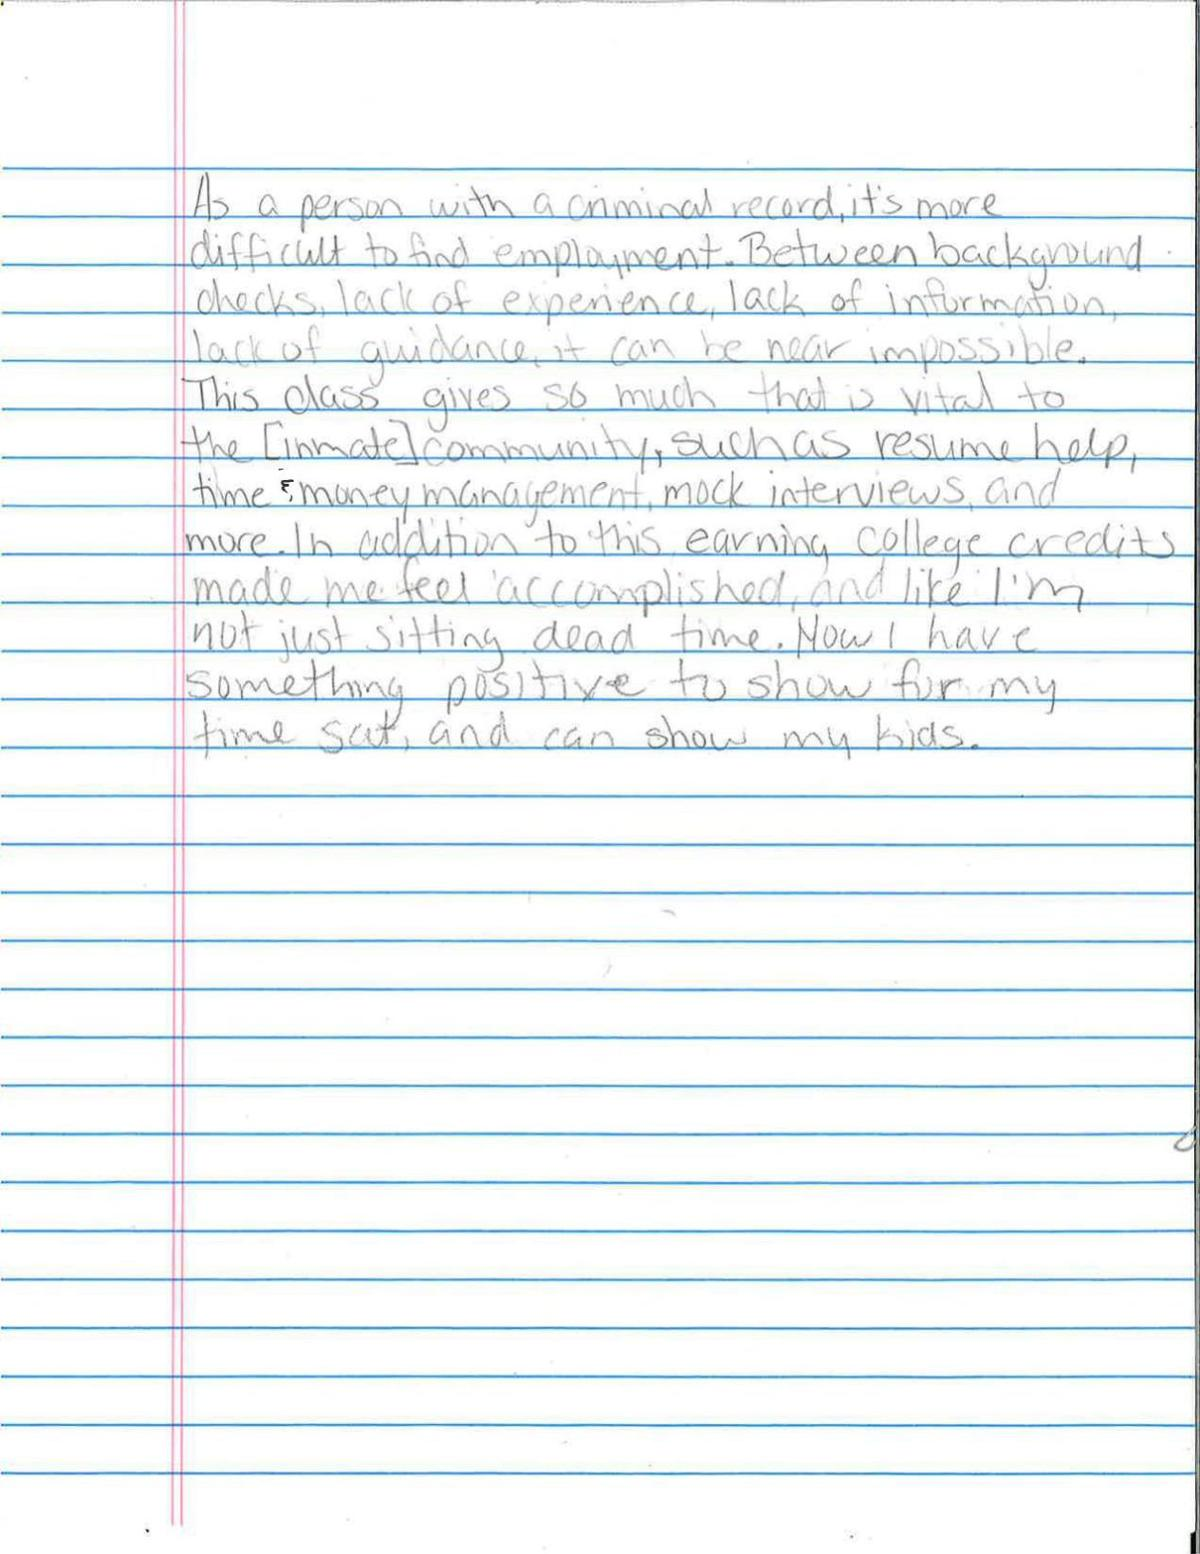 Letter from Trish Abbott Mathews, Project Proven student